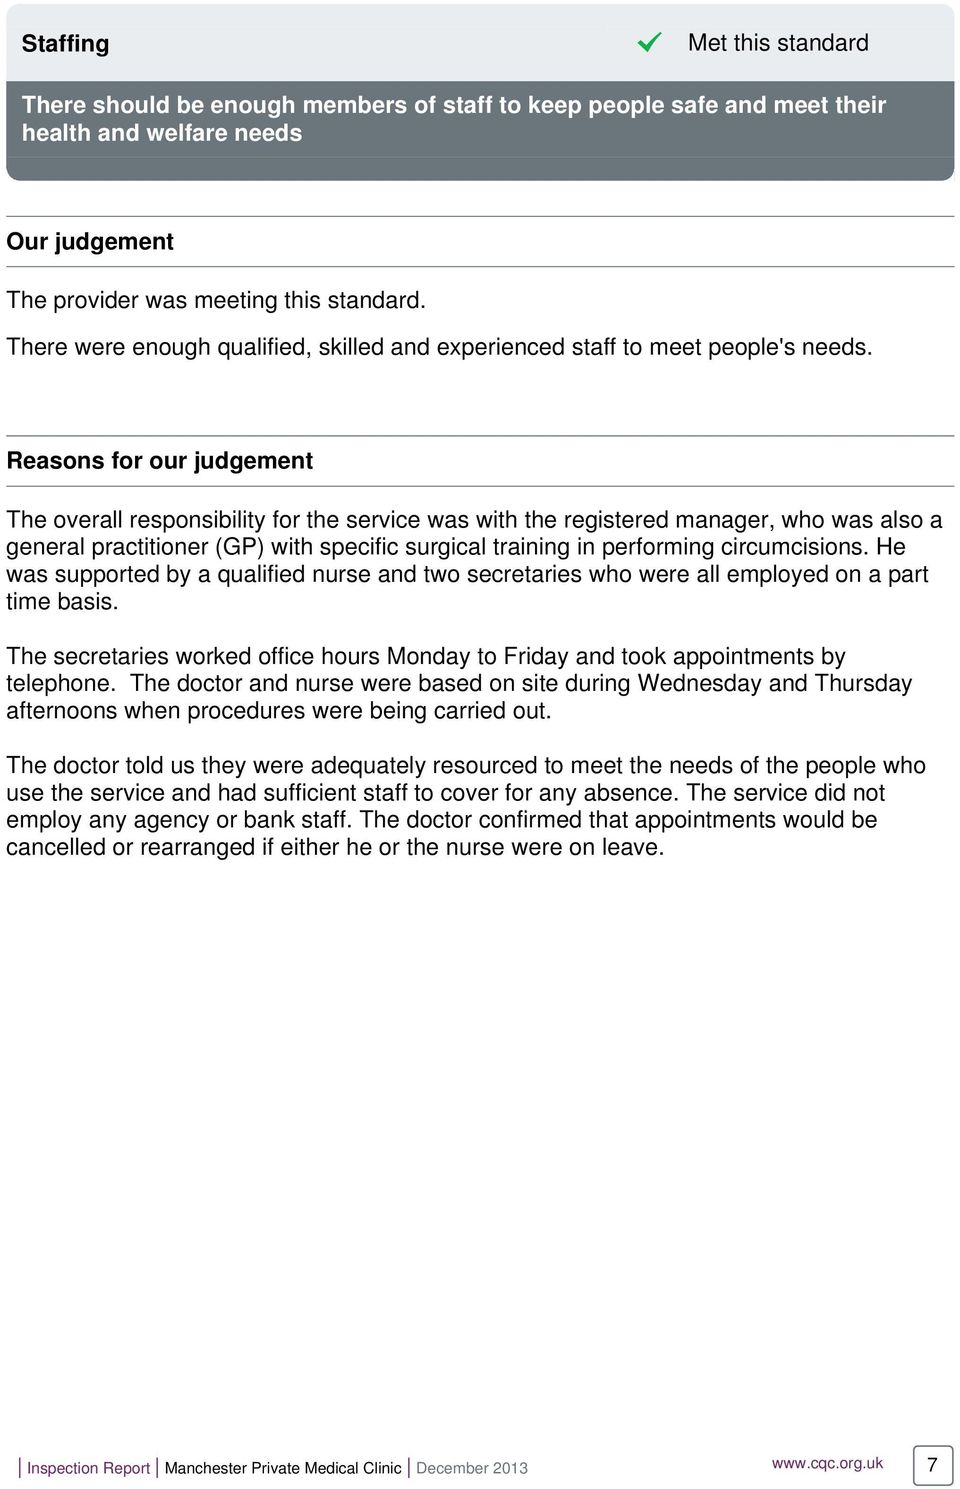 Reasons for our judgement The overall responsibility for the service was with the registered manager, who was also a general practitioner (GP) with specific surgical training in performing